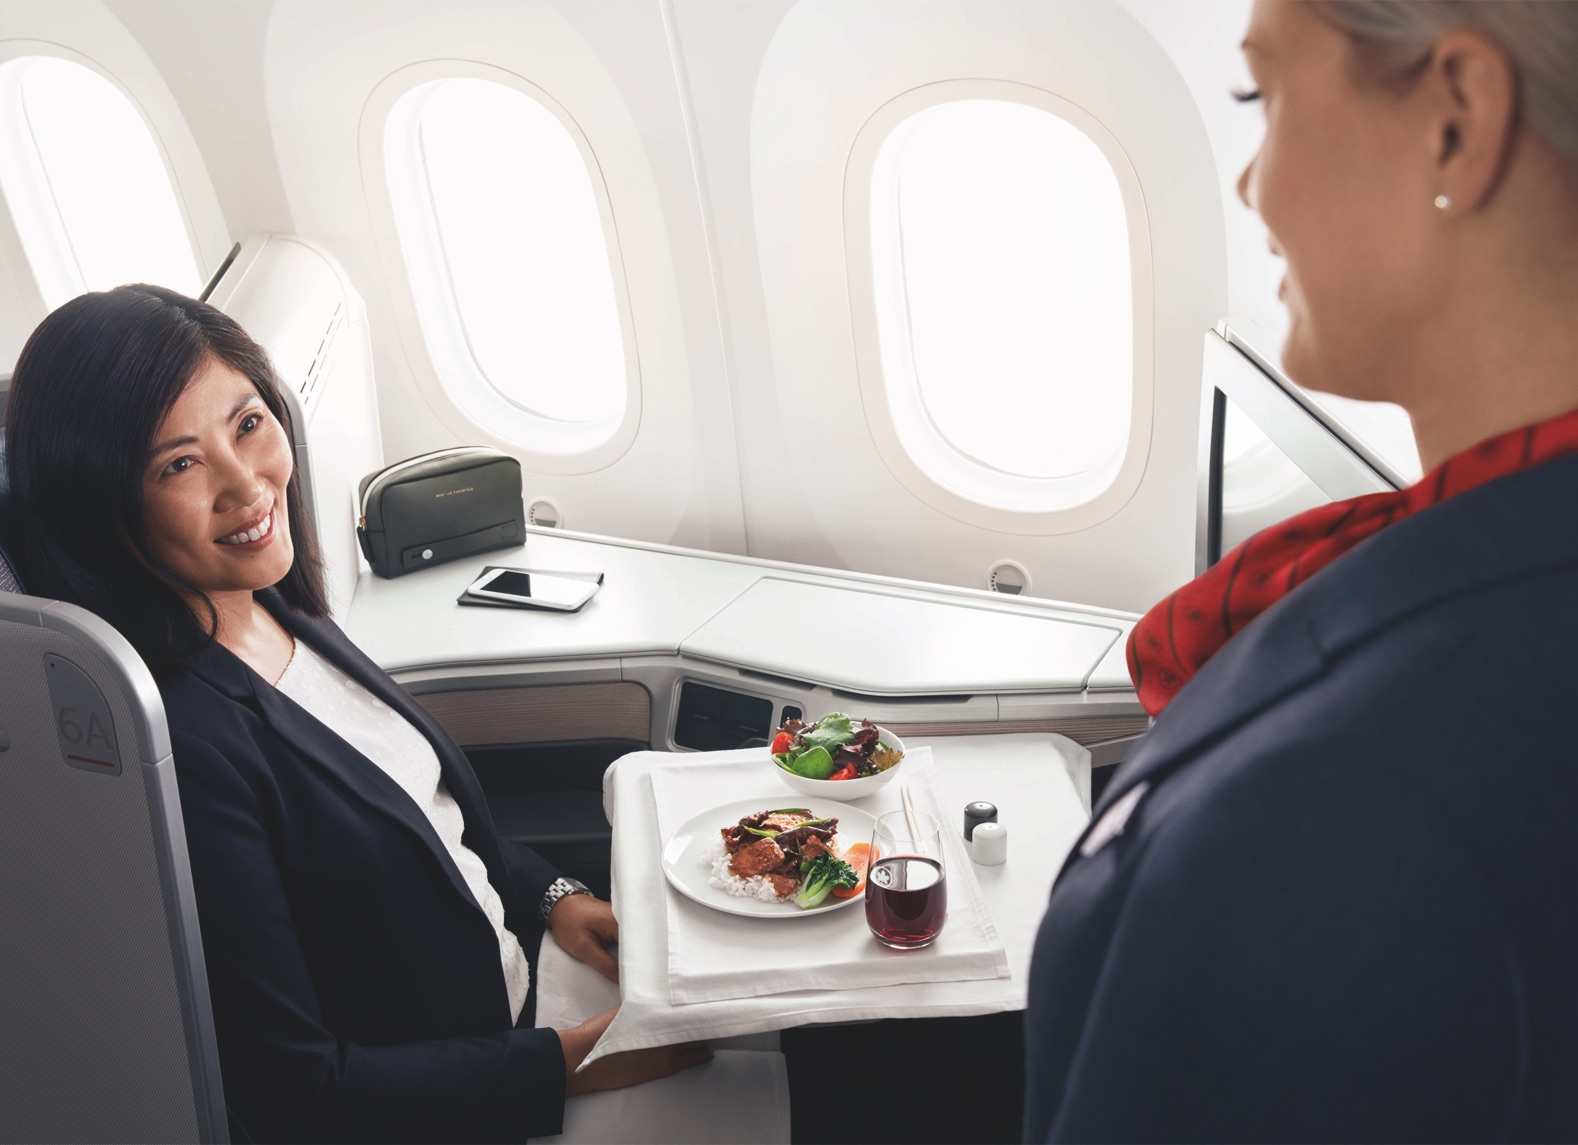 Genuine hospitality and a cutting-edge new business class product have helped Air Canada spearhead premium travel in North America and across to Asia, discovers Nick Walton on a recent flight from Hong Kong to Vancouver.